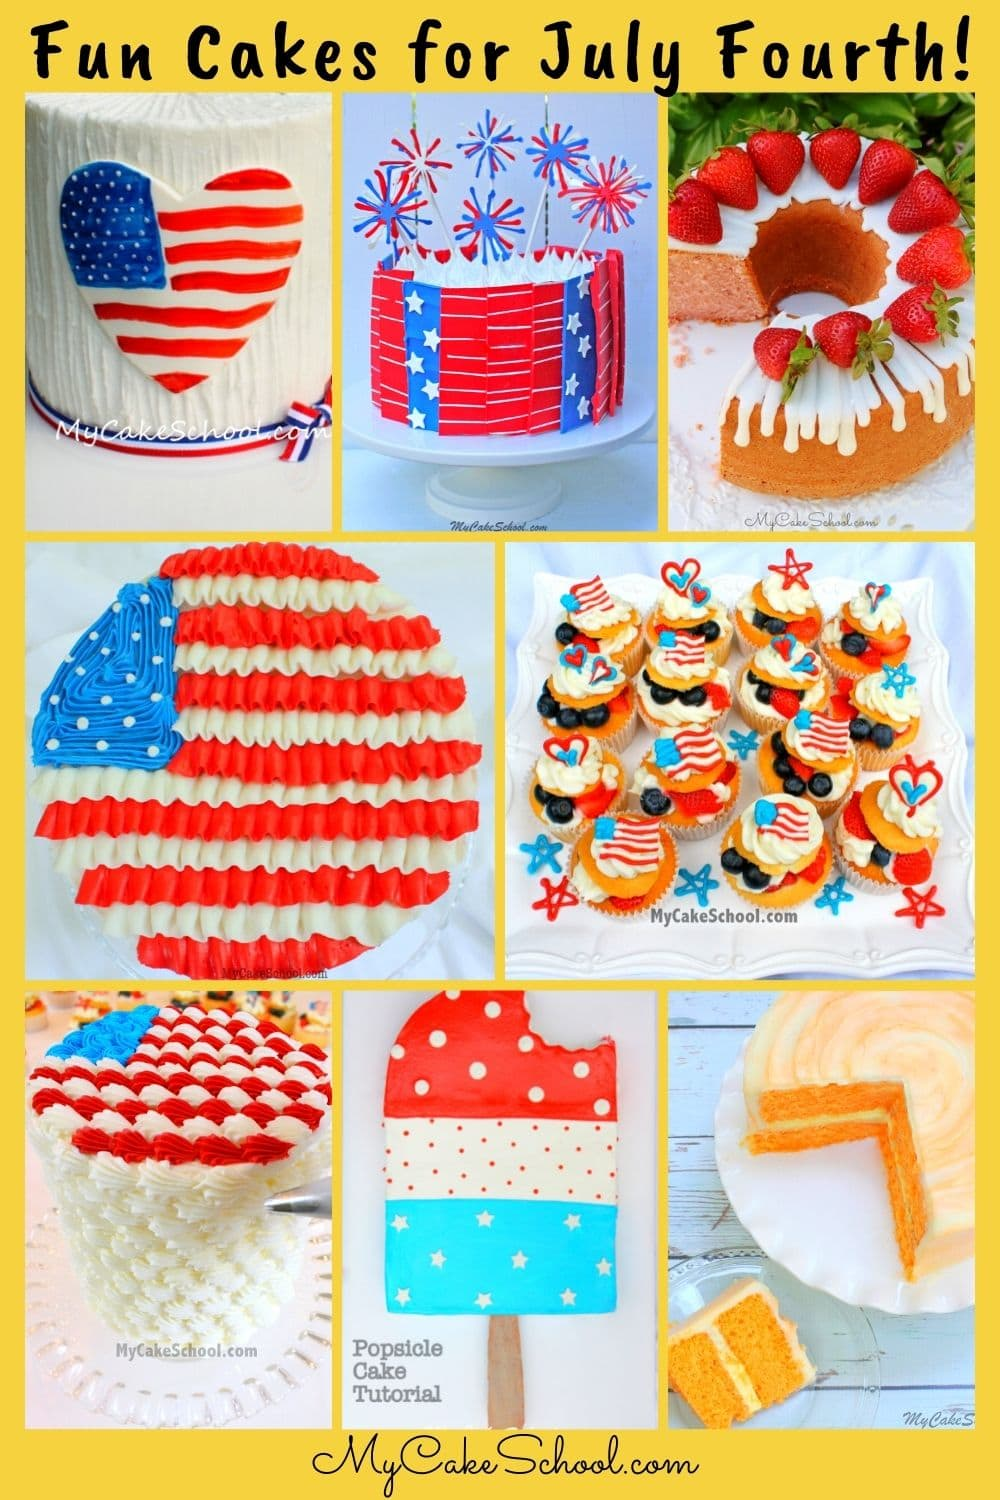 Fun Cakes for July Fourth